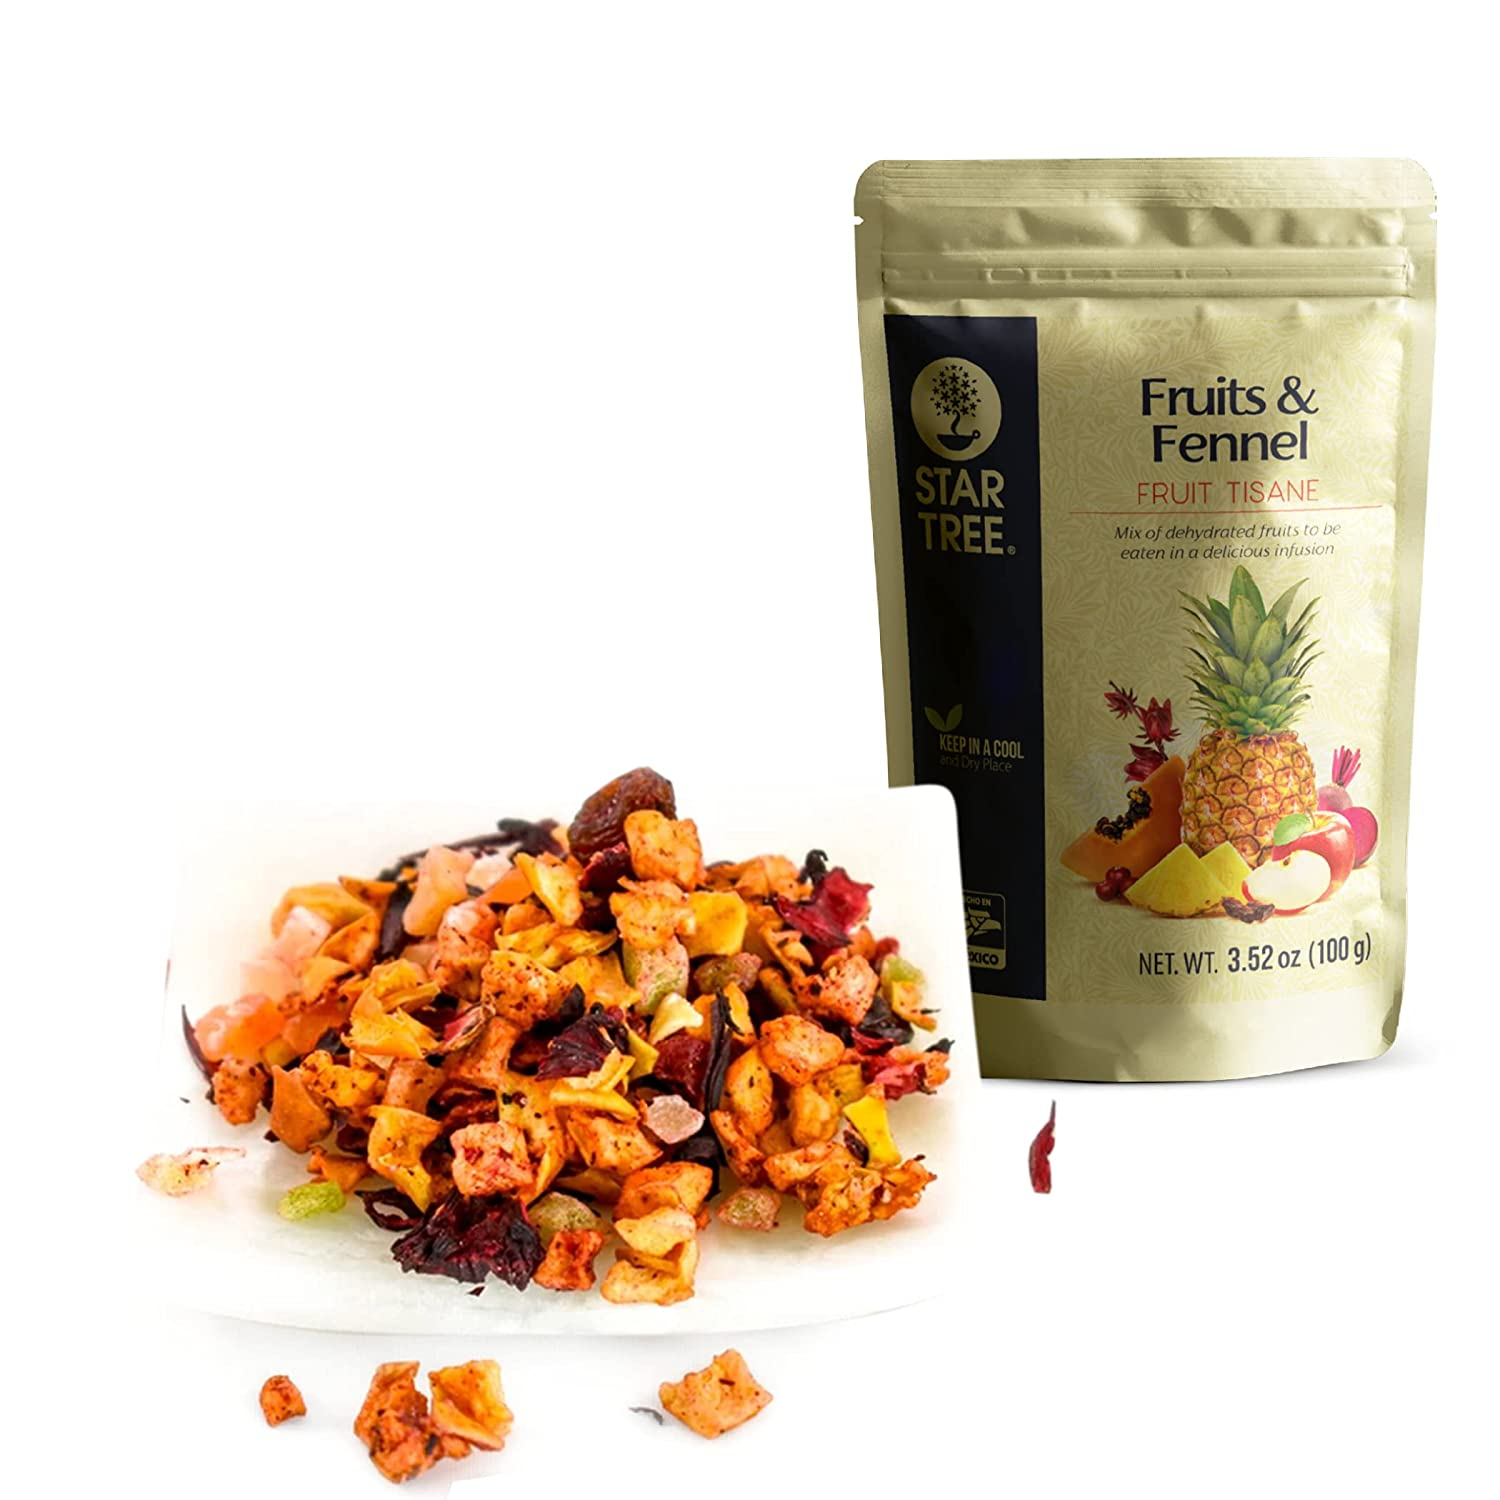 STAR TREE, Fruits and Fennel Infusion, blend of dehydrated apple, papaya, pineapple, cranberries, raisins, hibiscus and beetroot infused with fennel essential oil